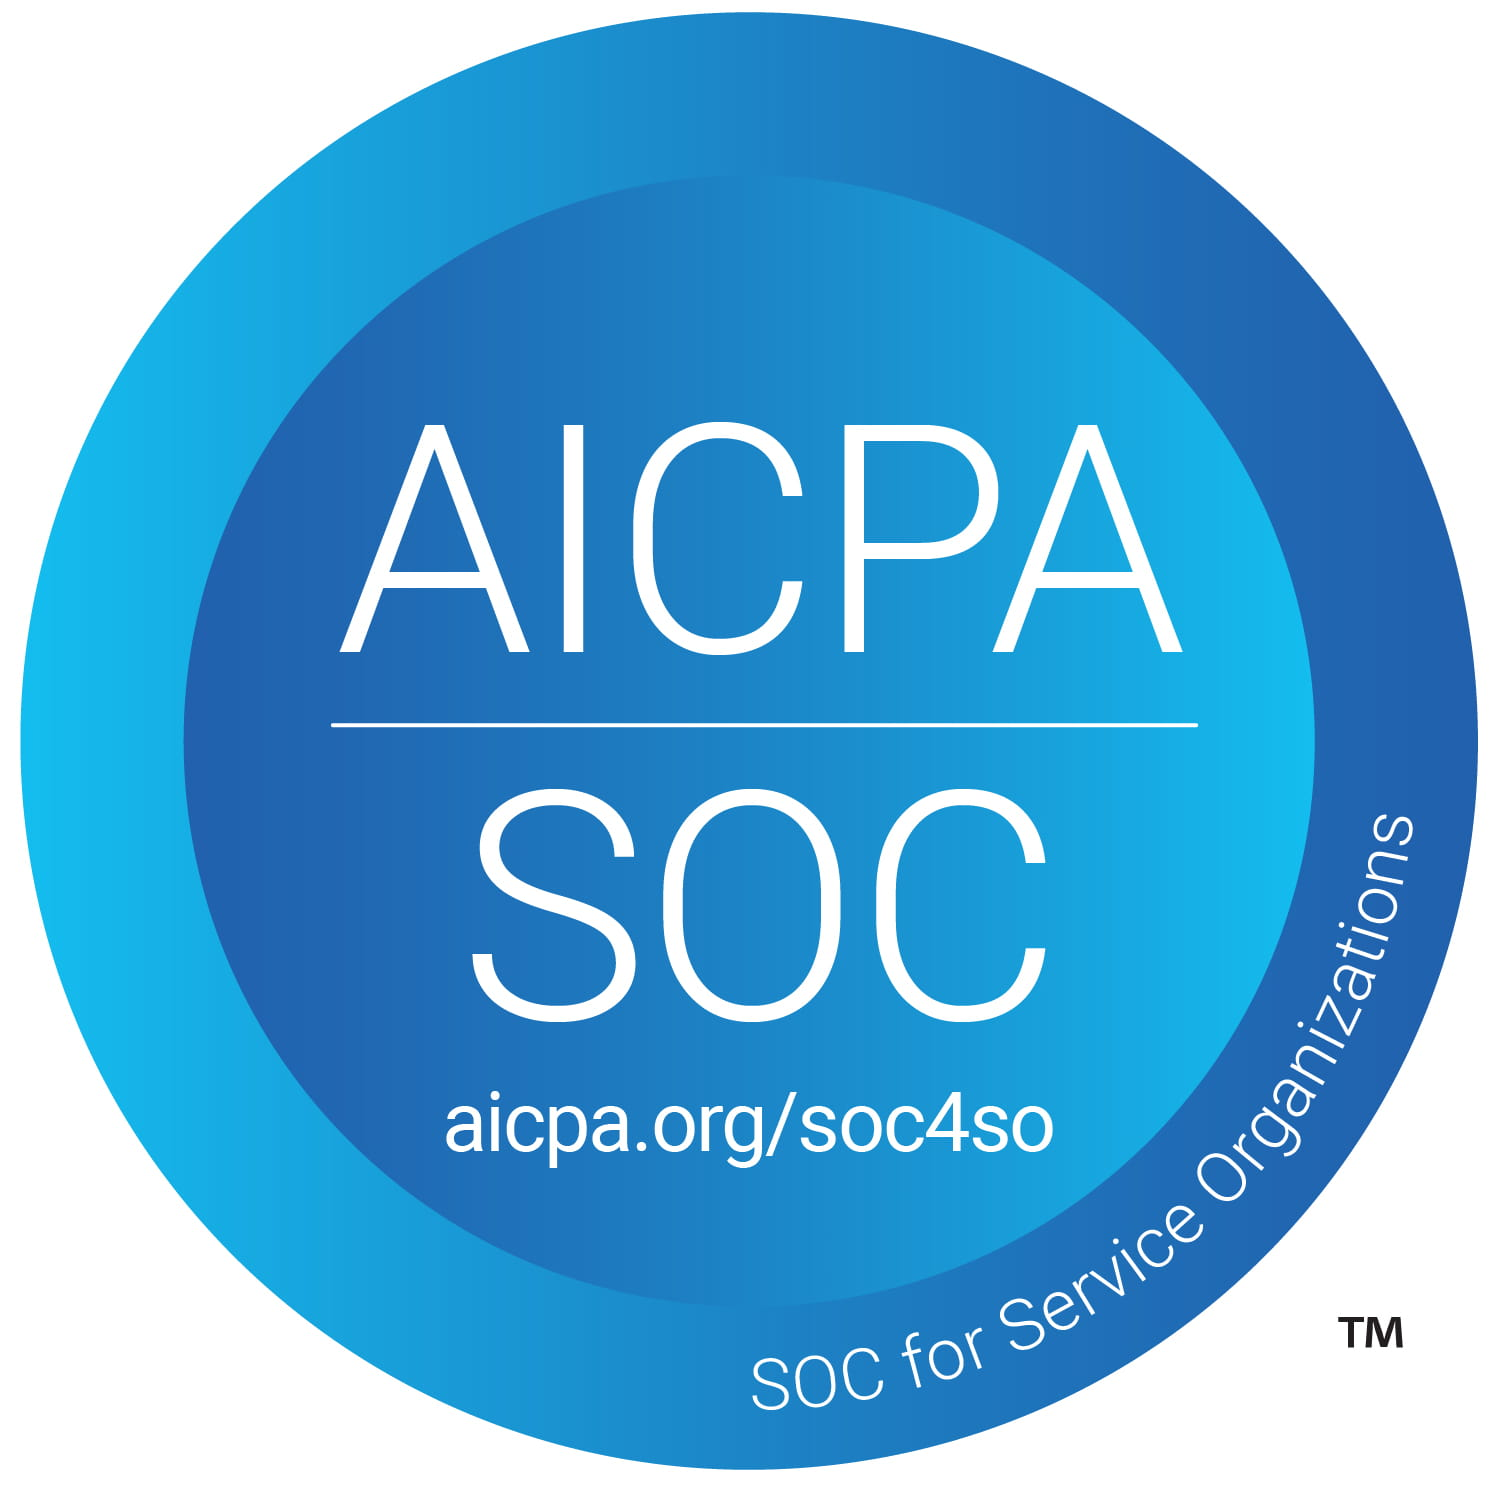 SOC audit - AICPA SOC for Service Organizations